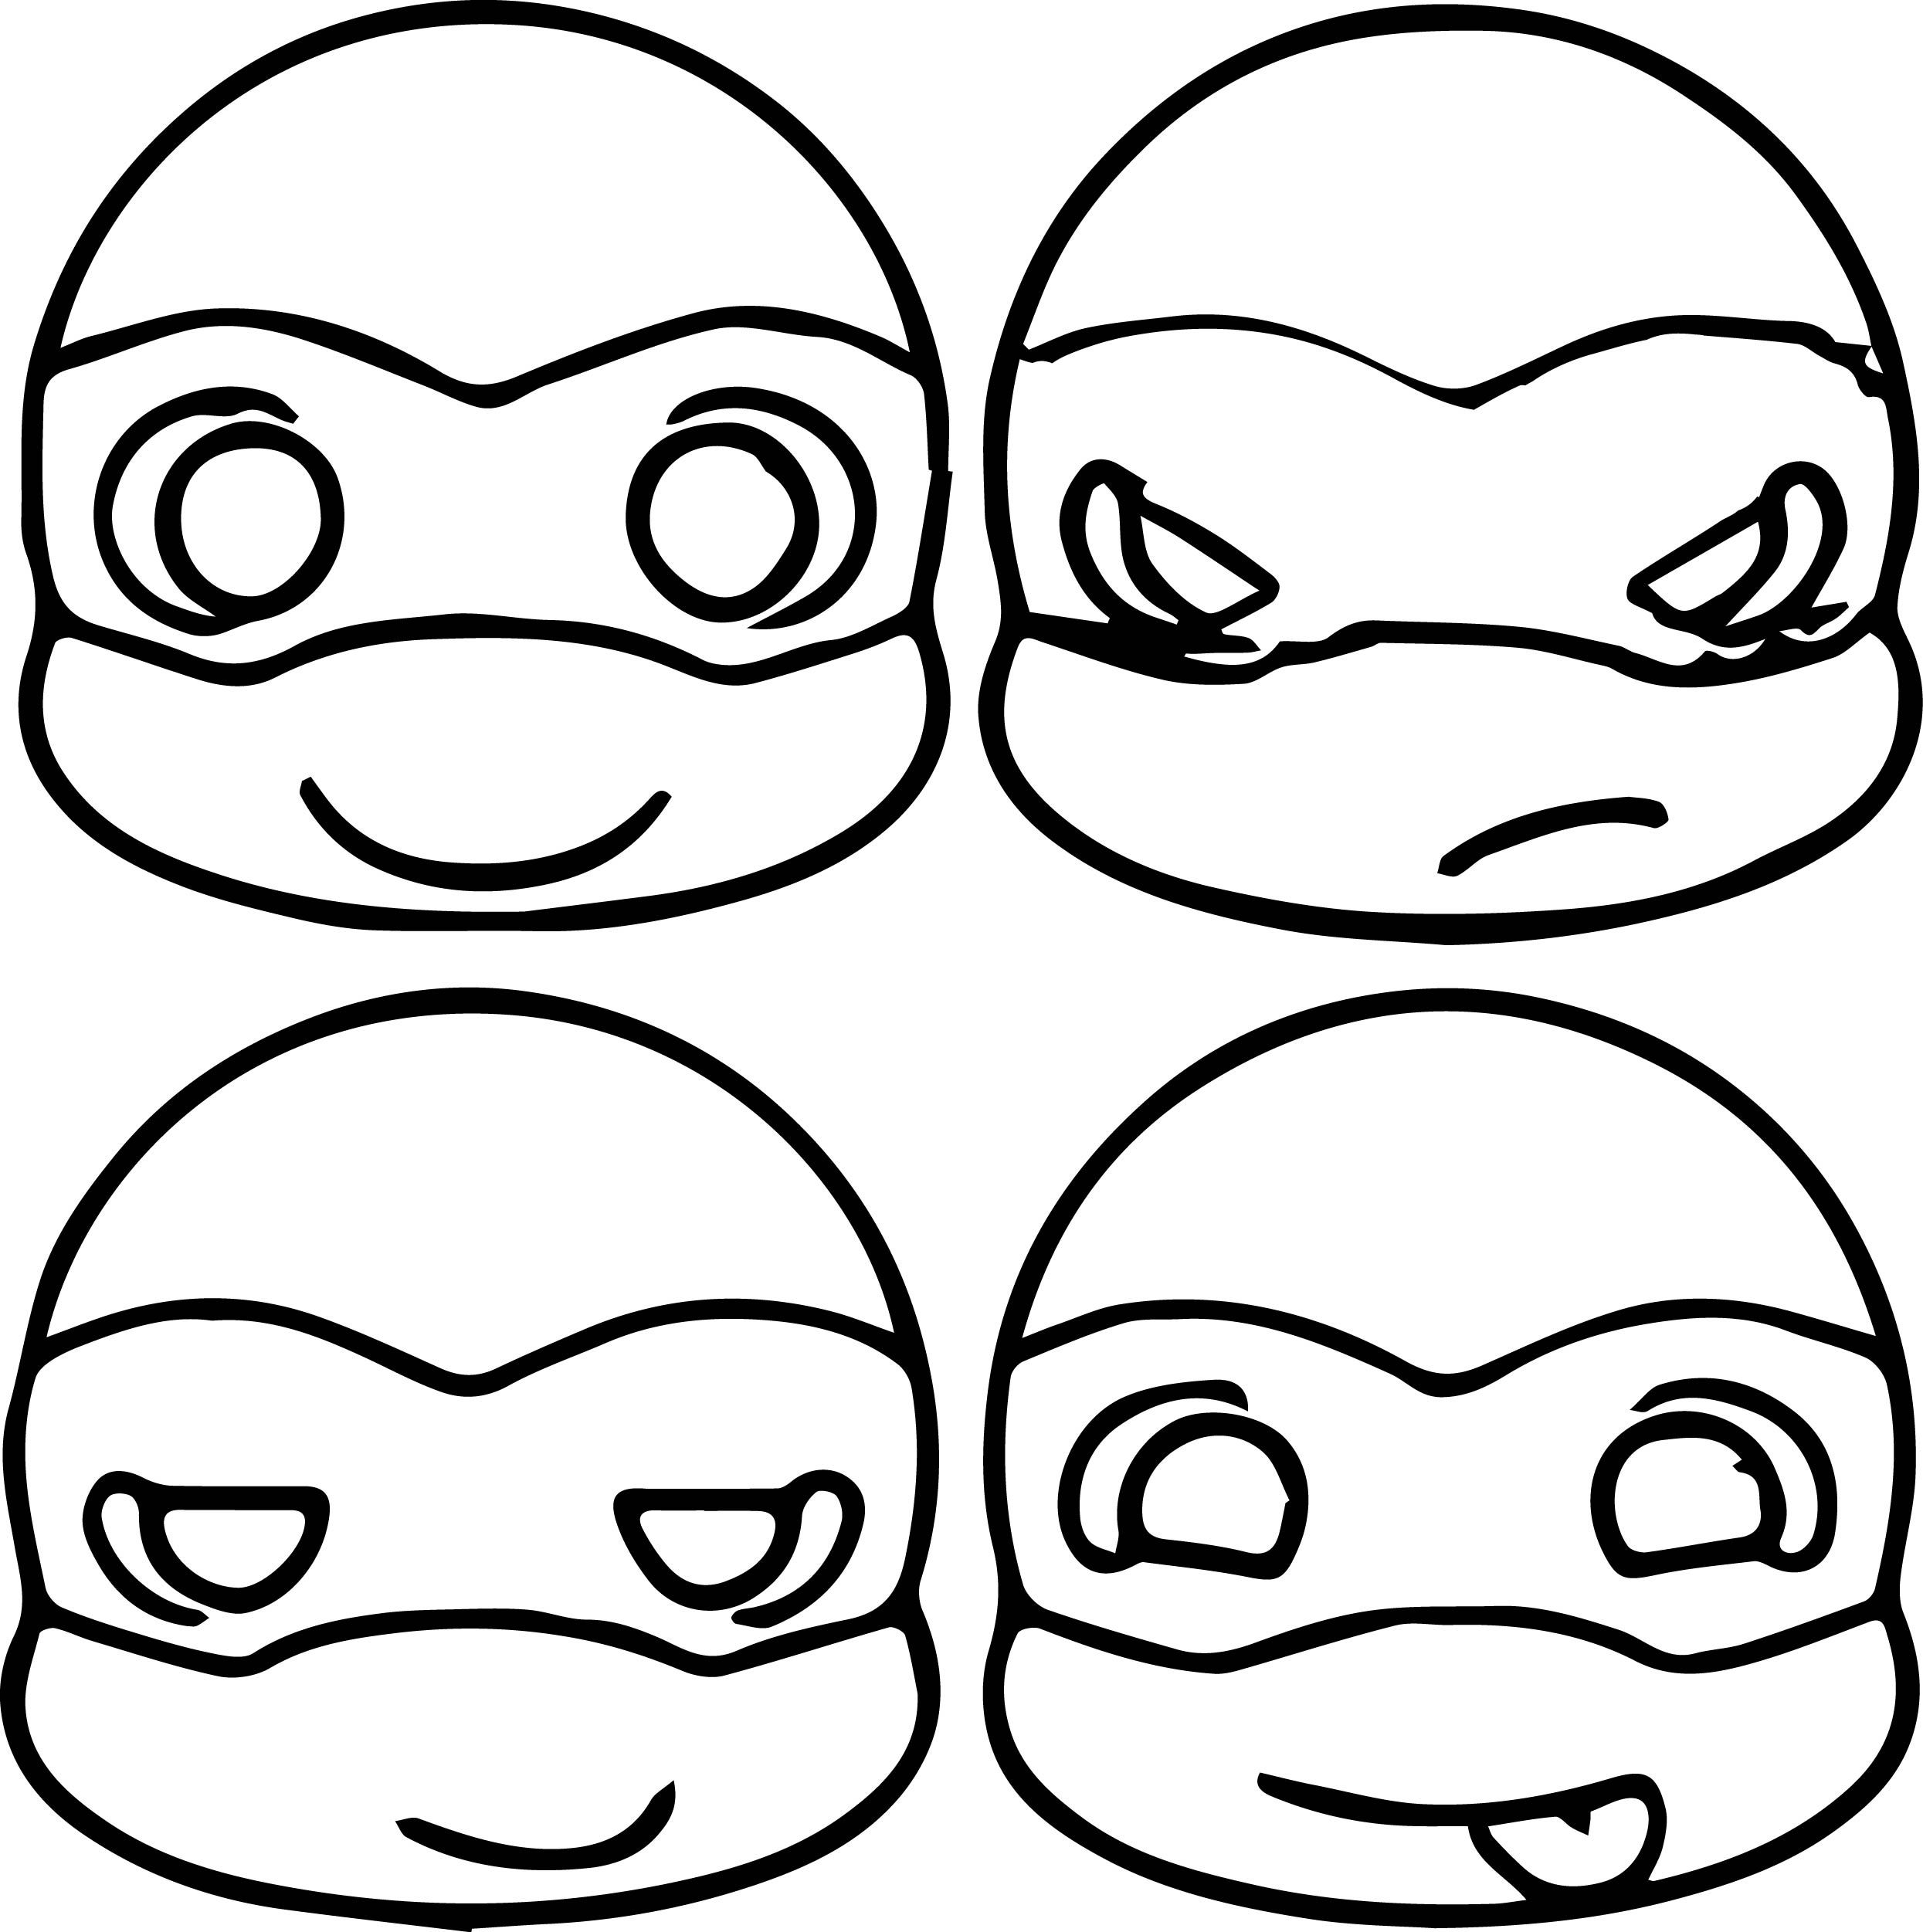 ninja turtle cartoon coloring pages | cartoons variety | coloring